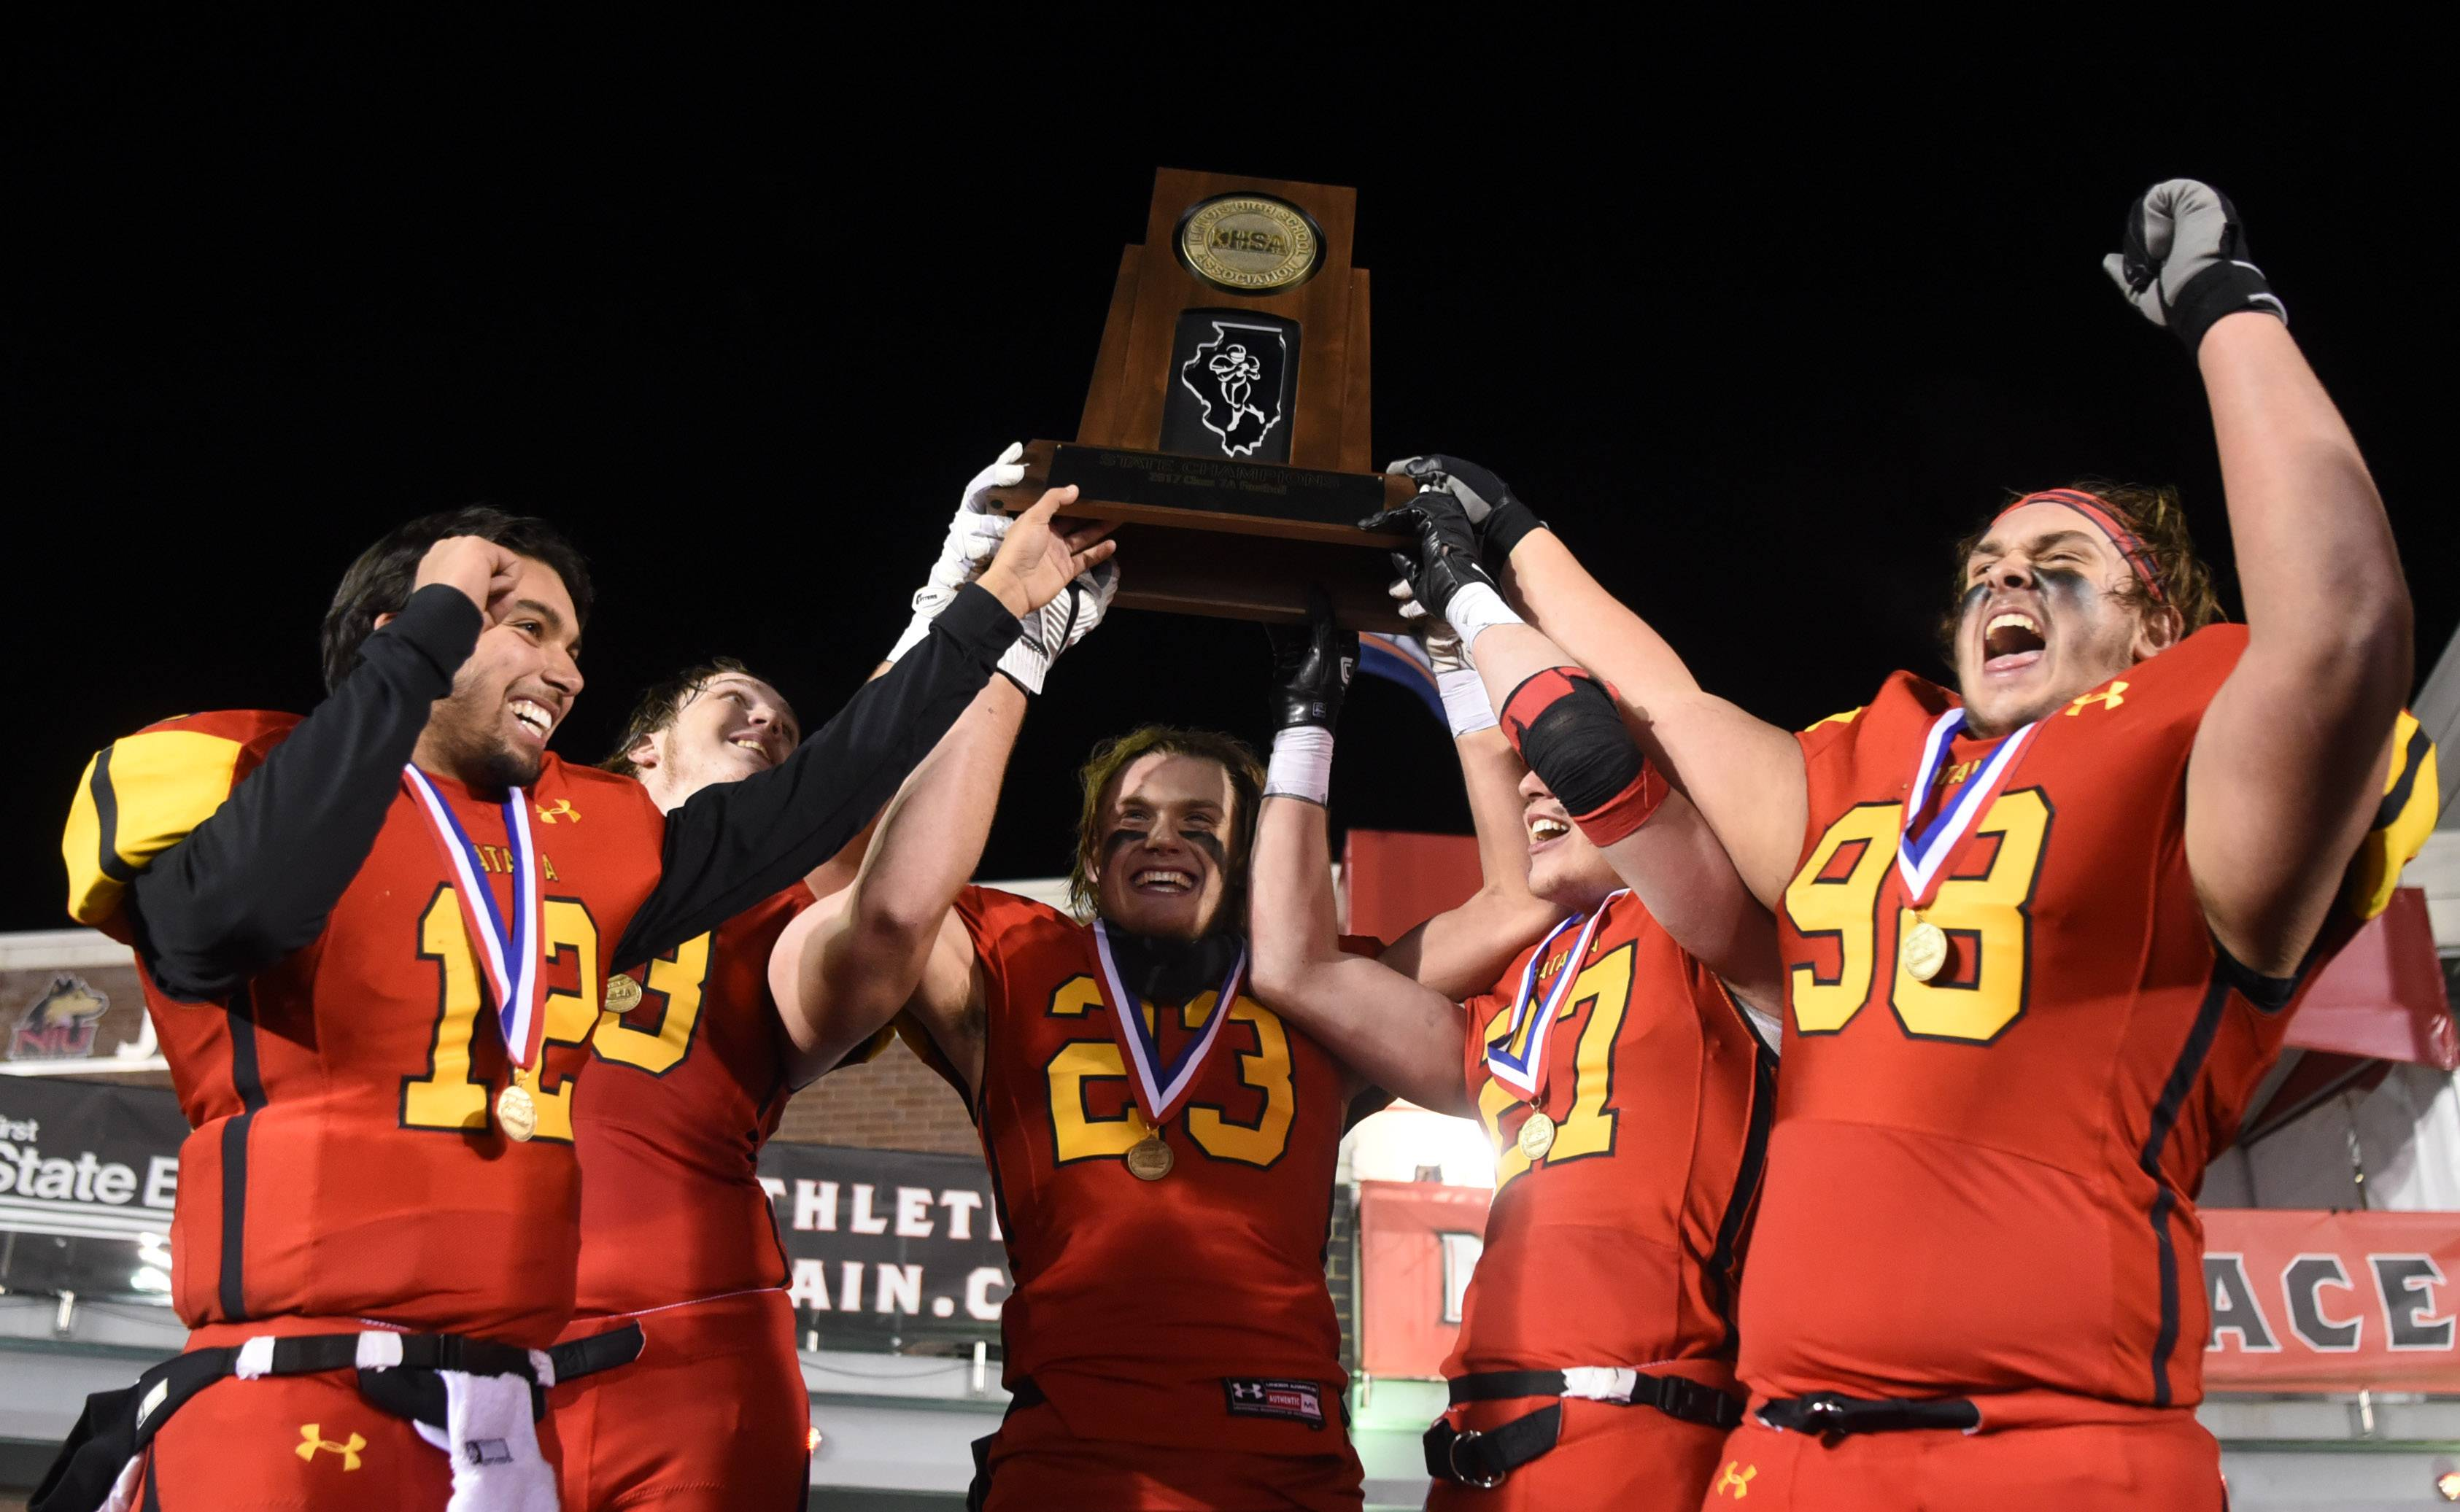 Left to right, Batavia's Riley Cooper, Nolan Eike, Tommy Stuttle, Michael Niemiec and Maxwell McFadden hold their first-place trophy following their 21-14 OT win over Lake Zurich during the Class 7A championship game at Huskie Stadium in DeKalb Saturday.